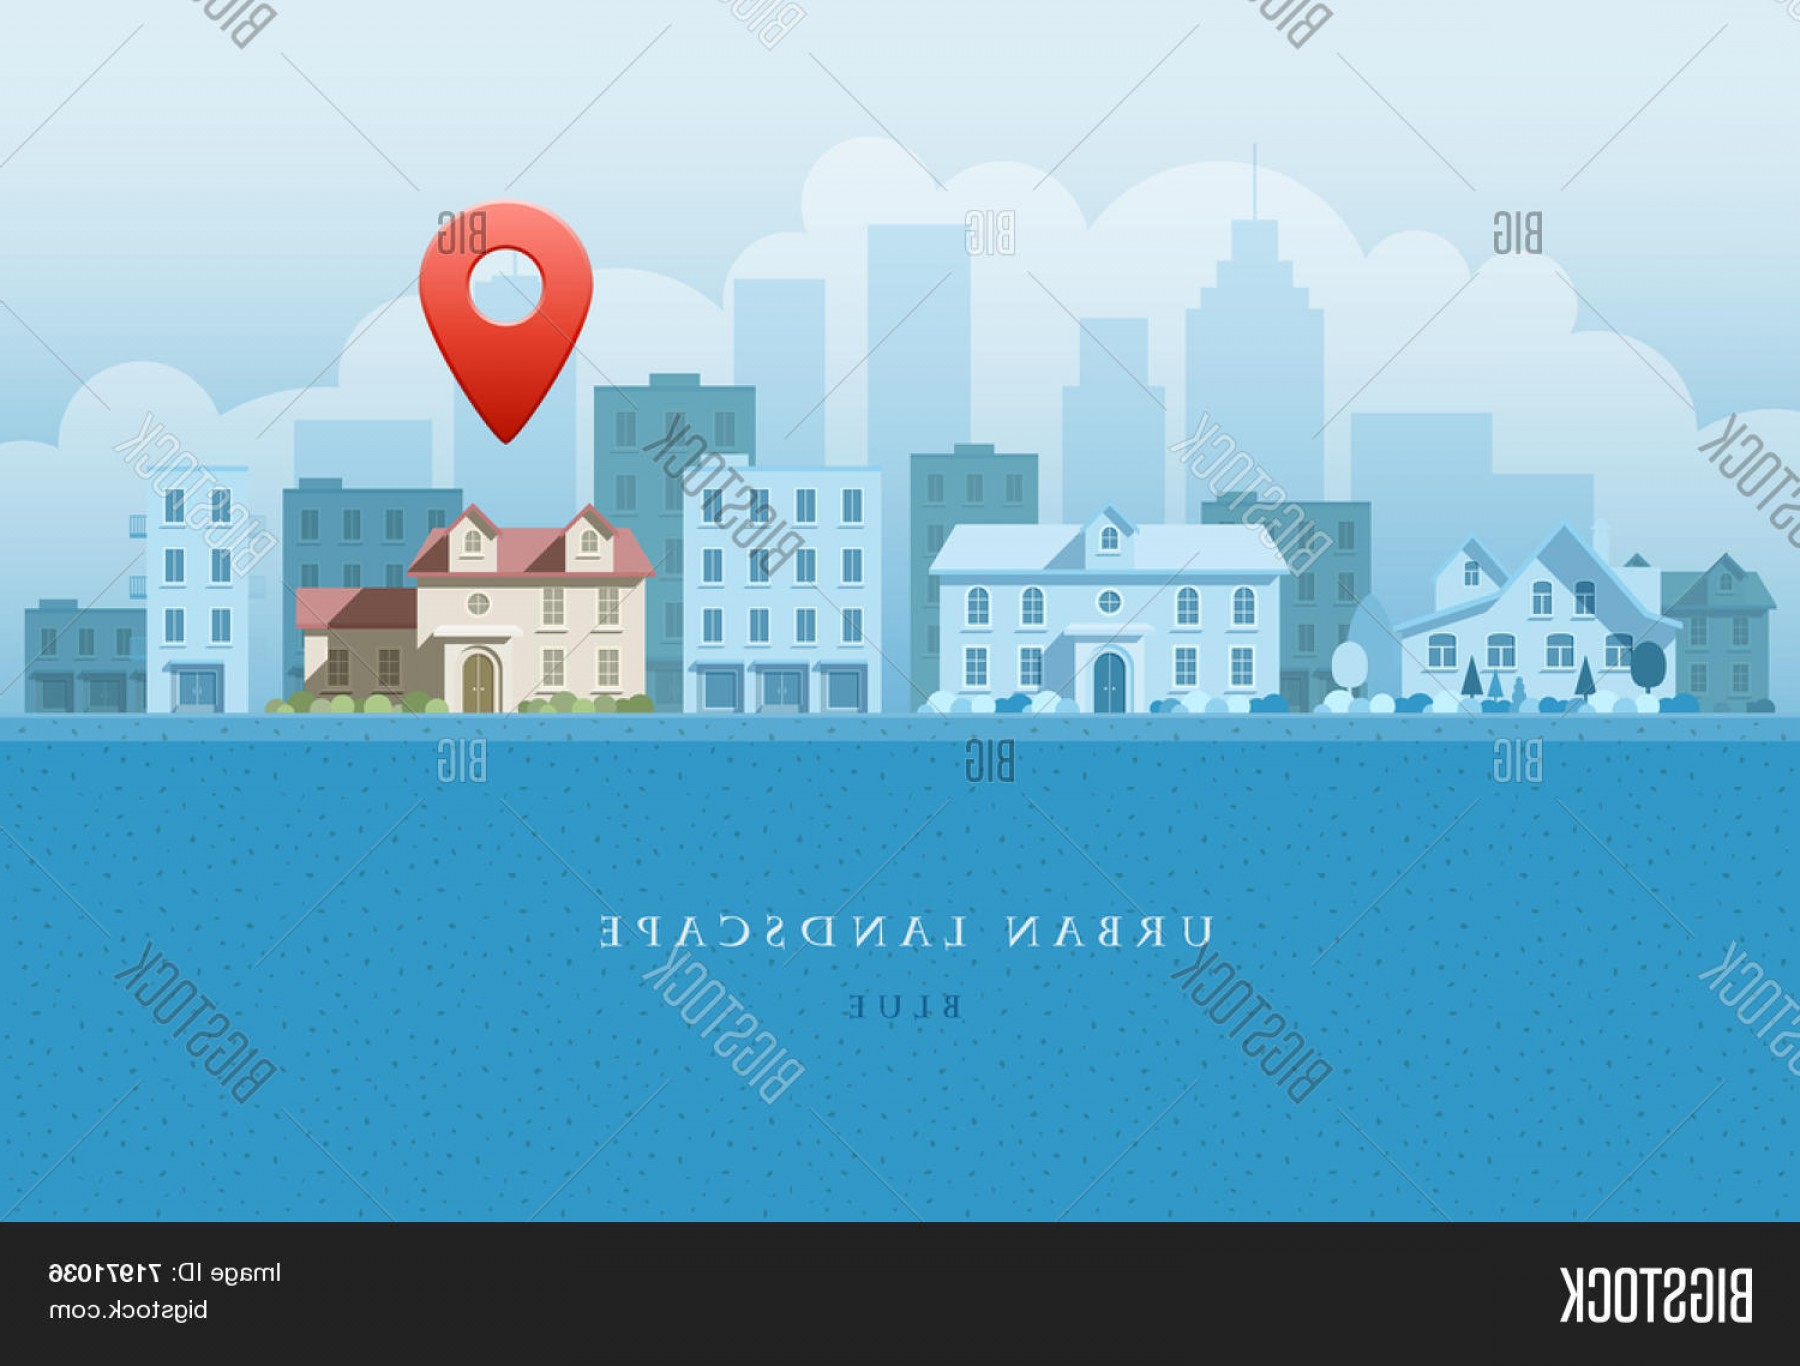 City Vector: Stock Vector Vector Flat Illustration Of City Landscape Options Concept Elements Are Layered Separately In Vect